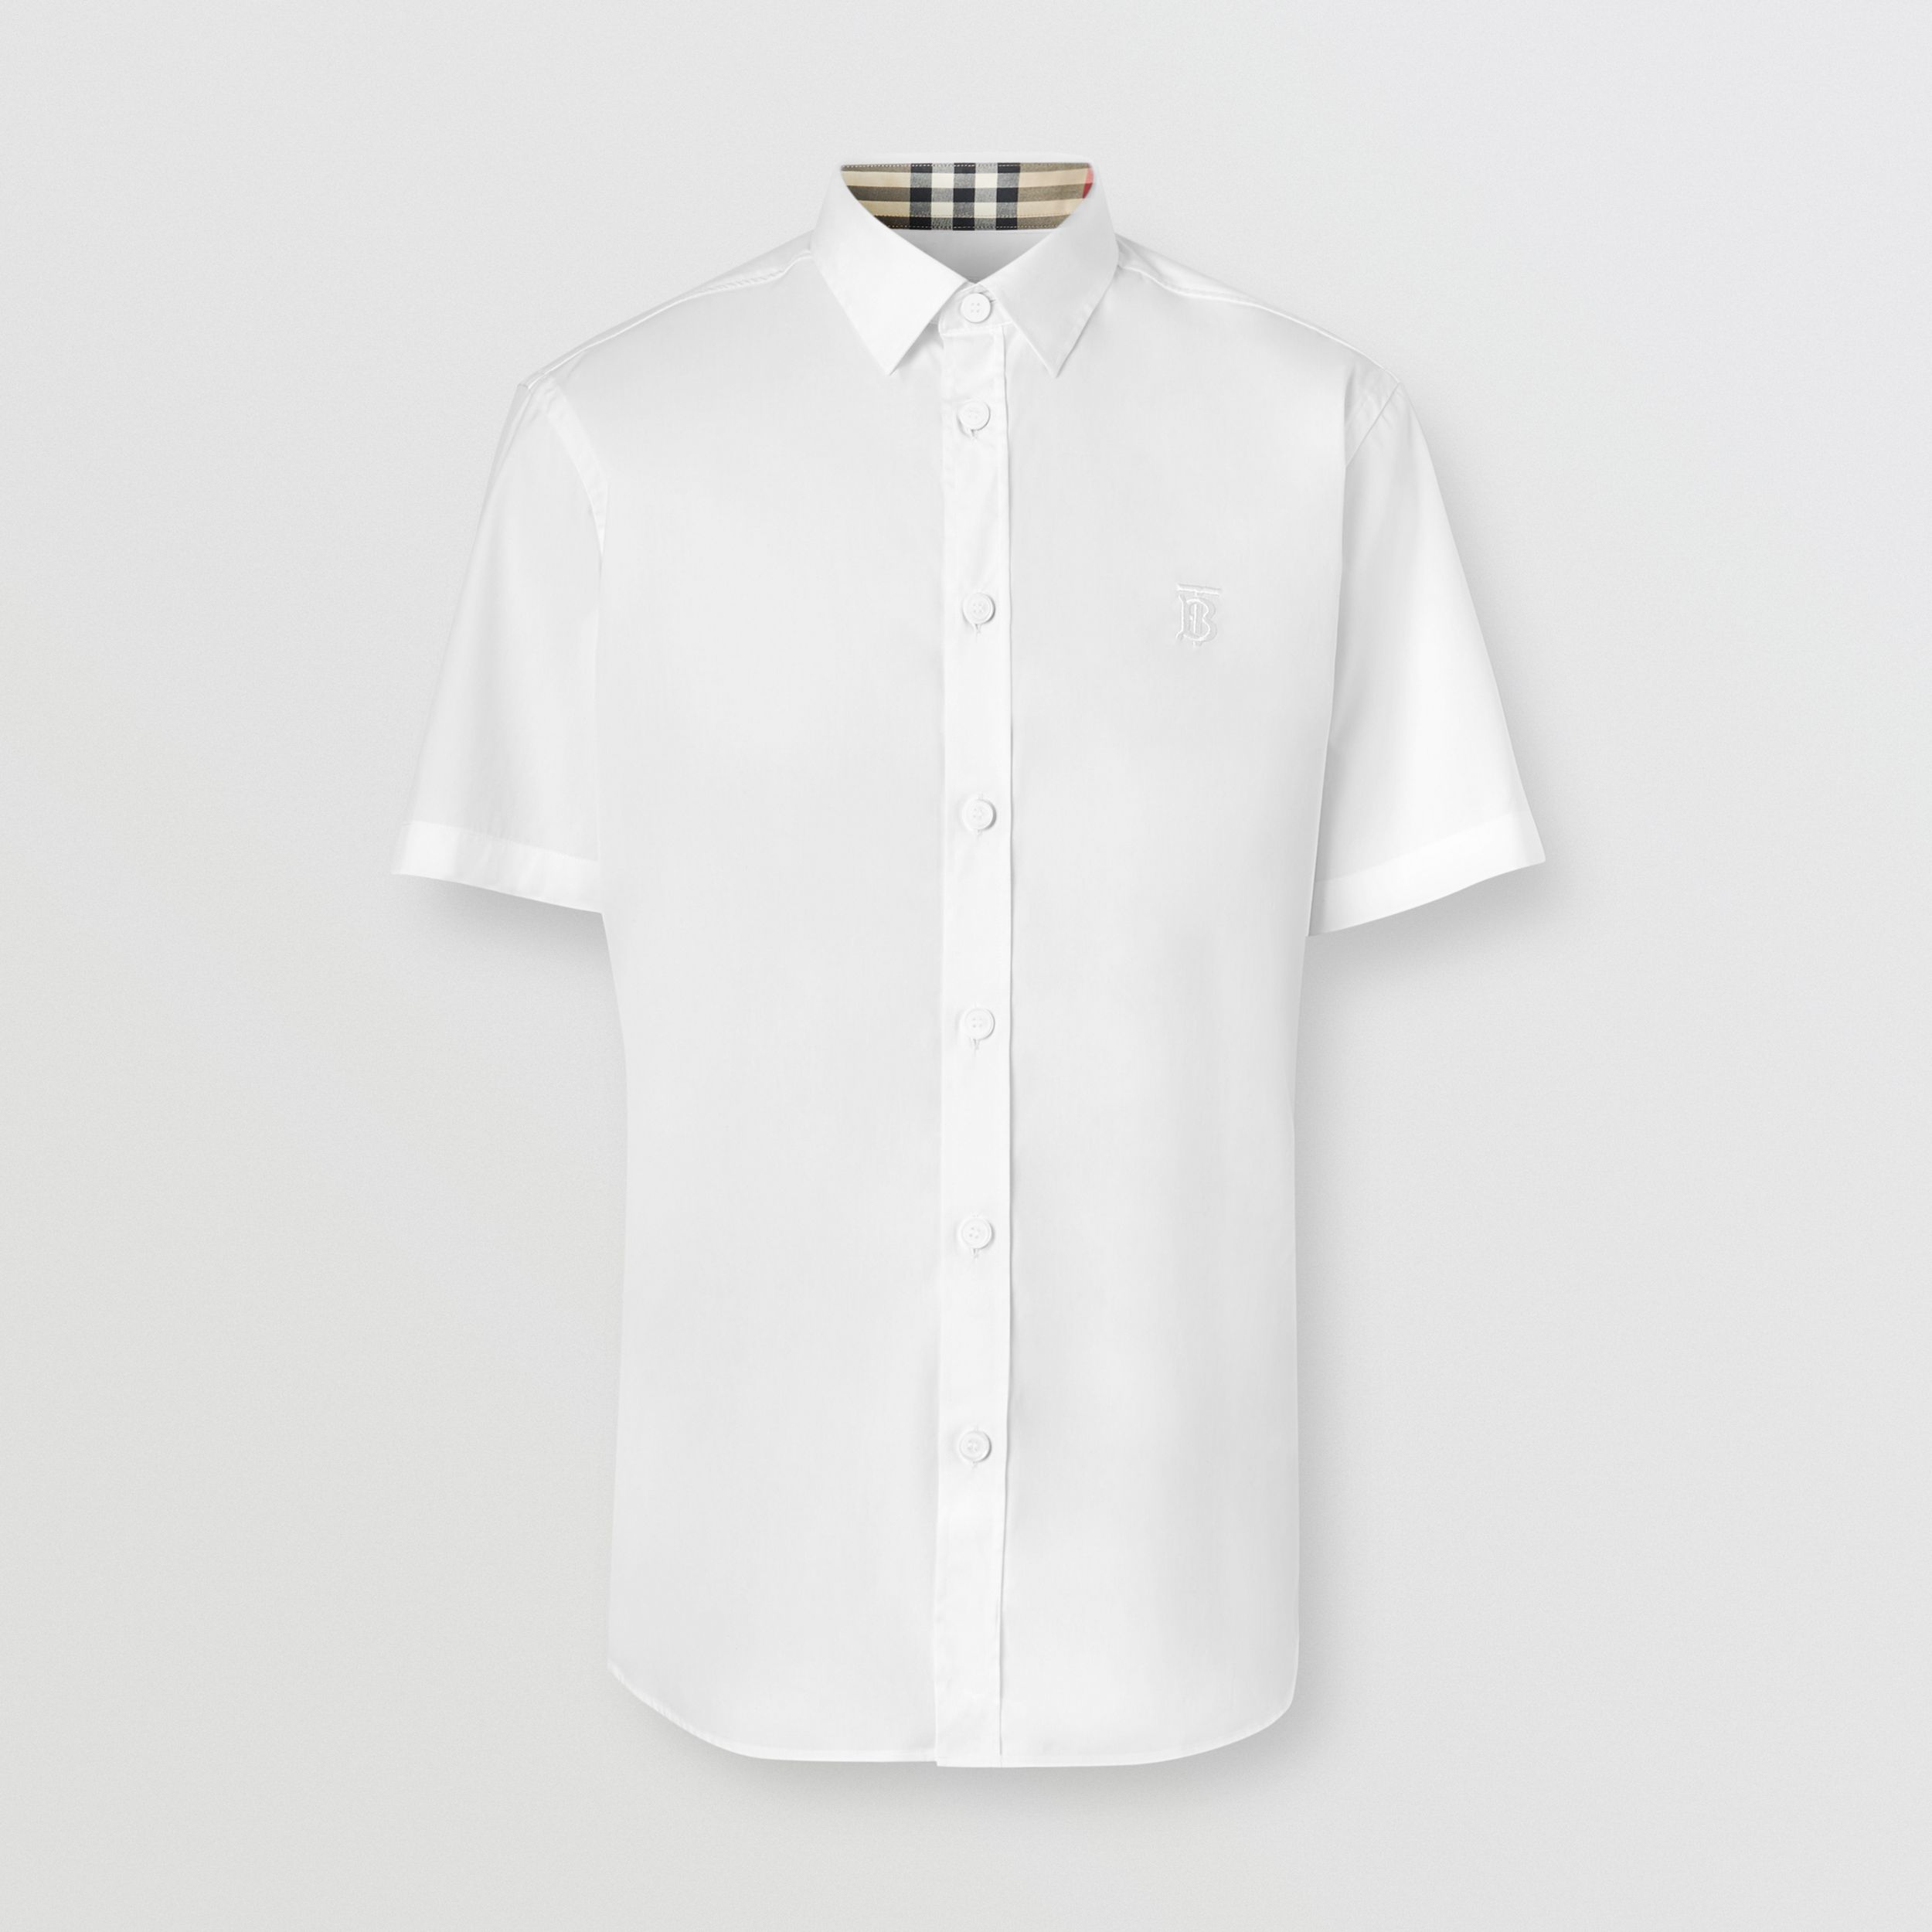 Short-sleeve Monogram Motif Stretch Cotton Shirt in White - Men | Burberry United States - 1